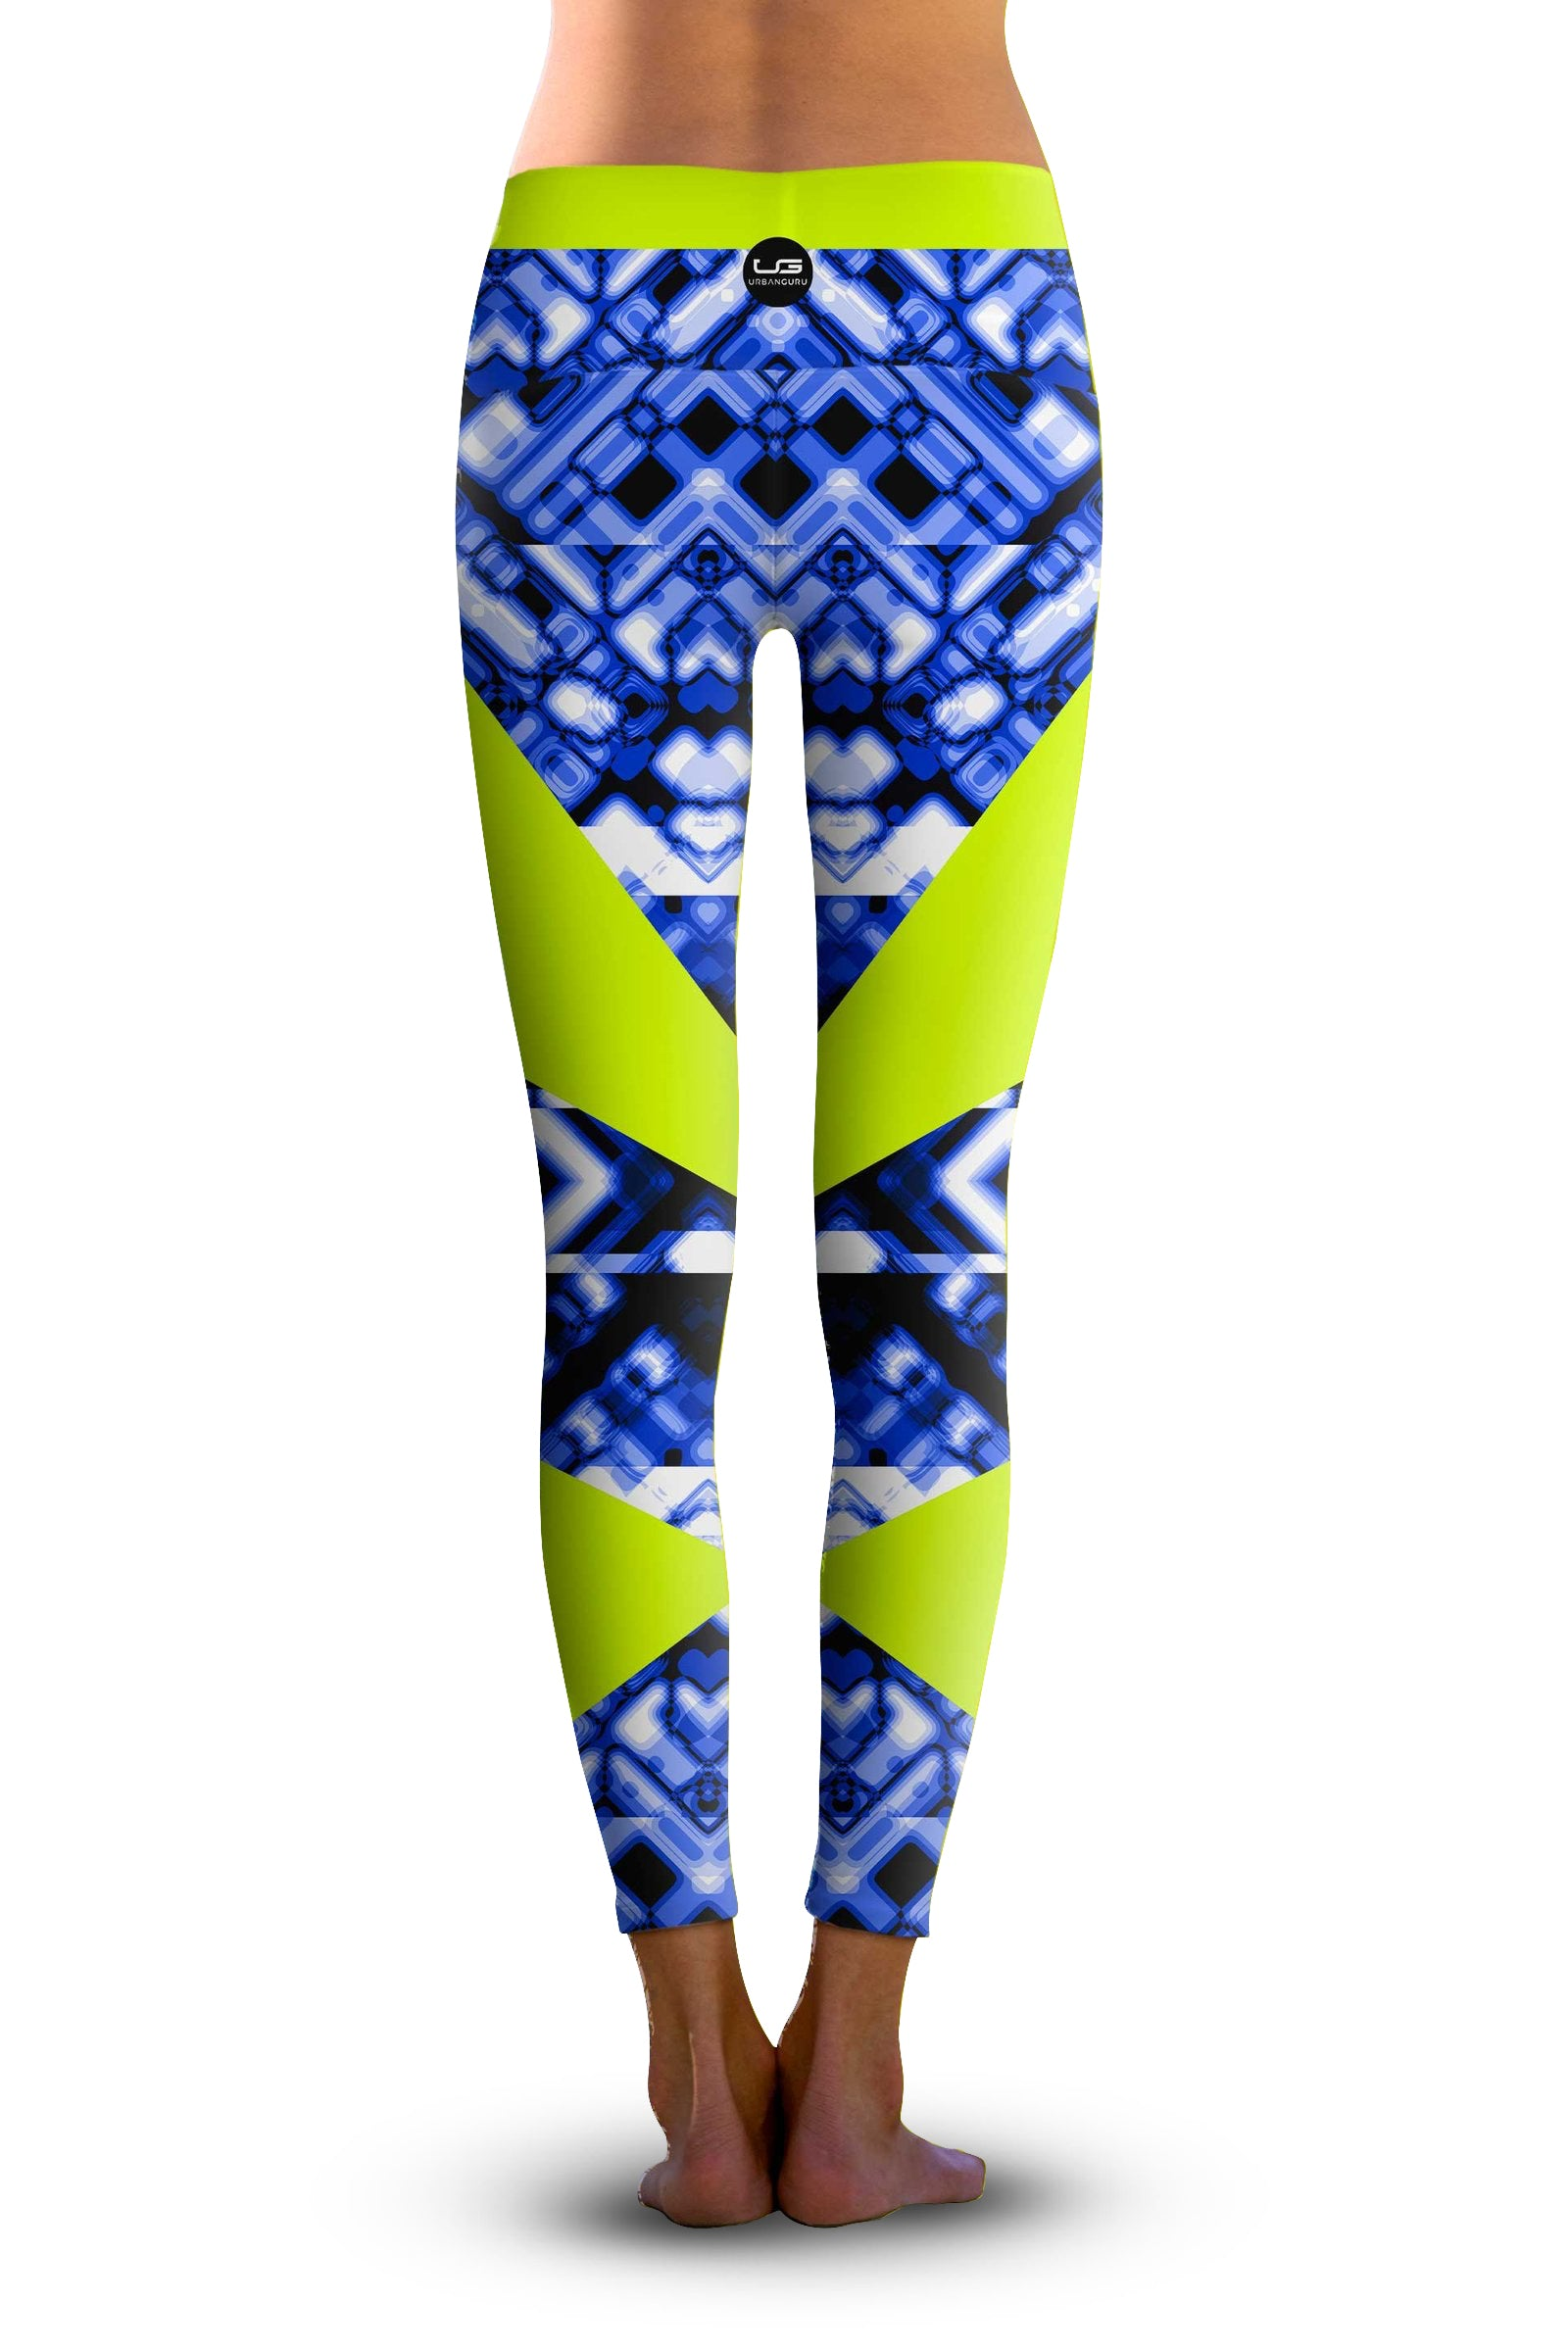 #Techno Tronic, Eco-Friendly Active Performance Leggings